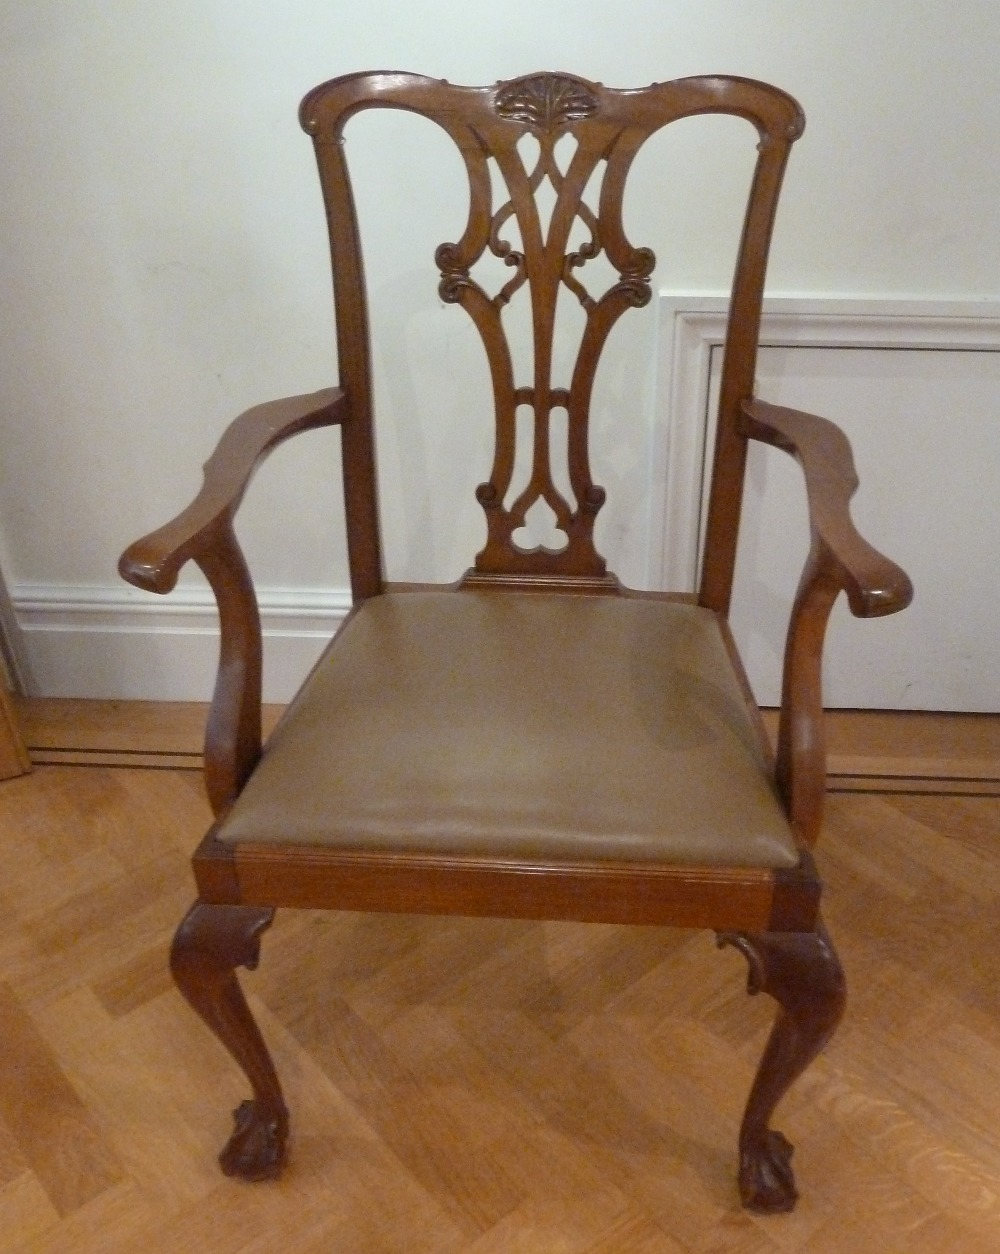 Lot 48 - A Chippendale style mahogany armchair, pierced slatted back and scroll legs